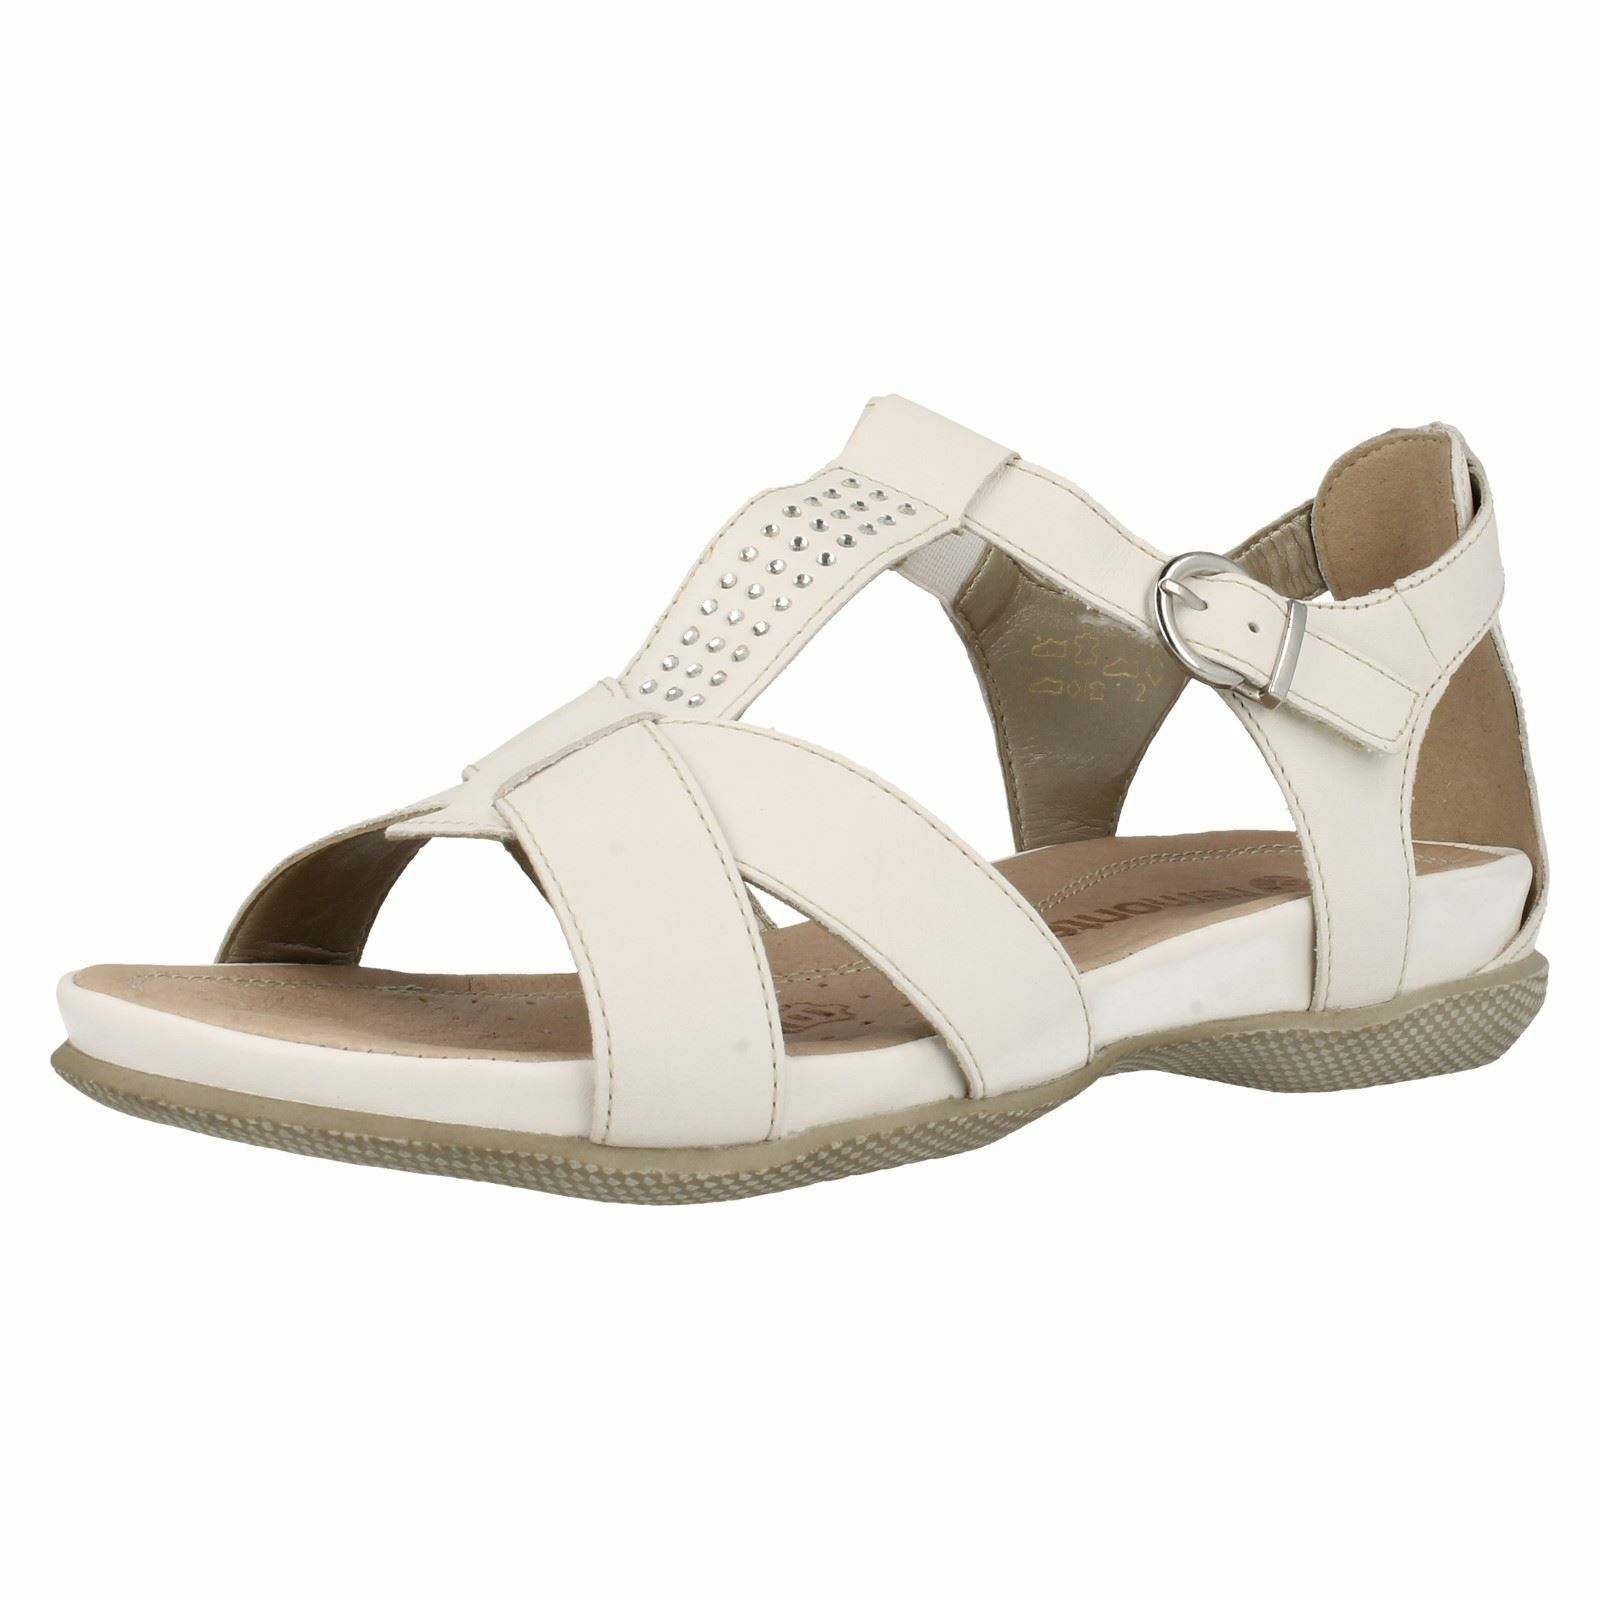 White Leather remonte open toe Summer remonte Leather Sandals r7455 5431b1